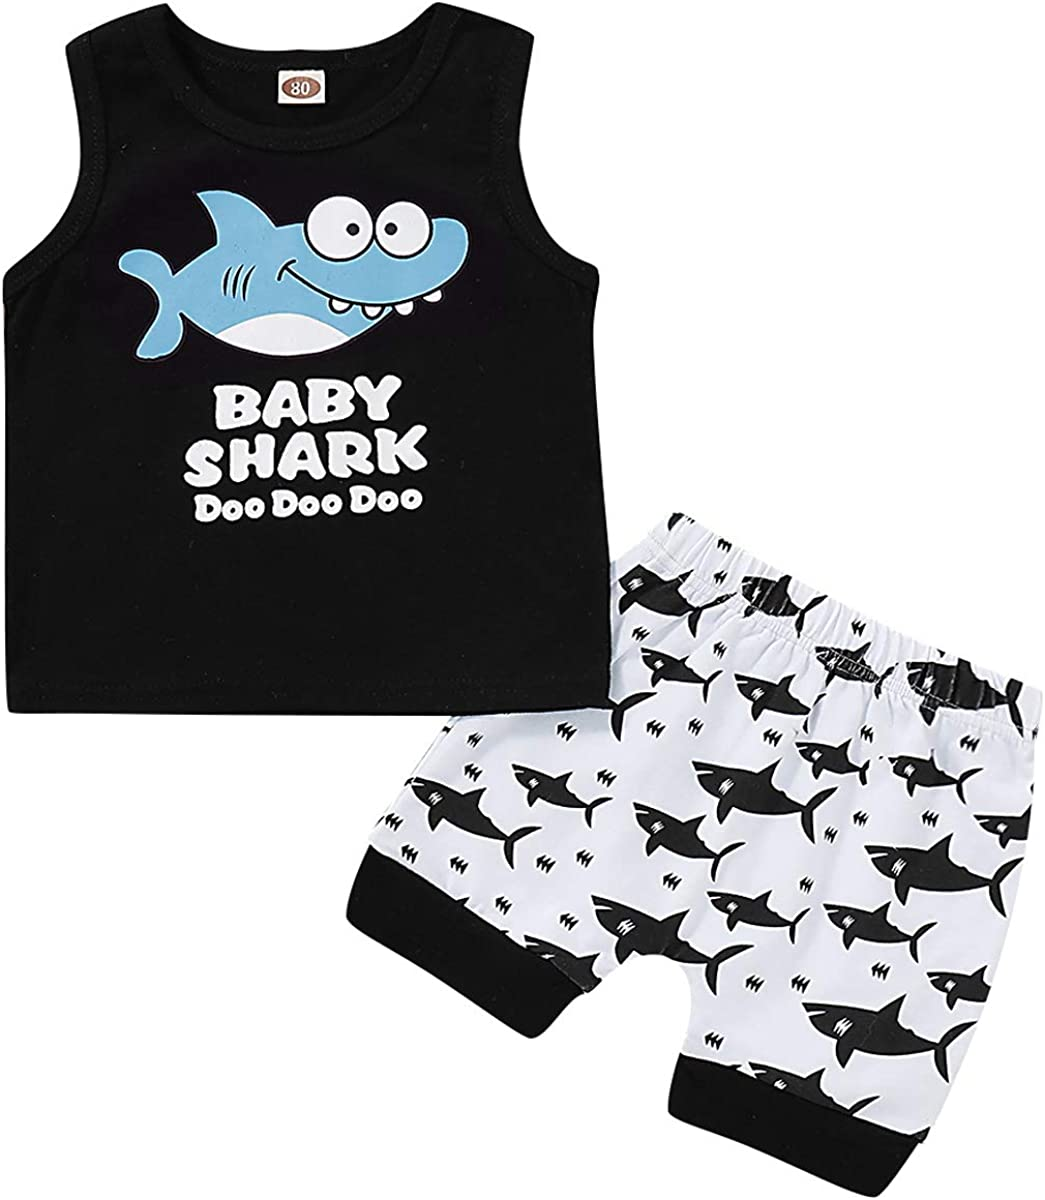 LZH Baby Boy Clothes Sets Summer Cotton Shark Print Sleeveless Tops Short Pants Outfits Sets